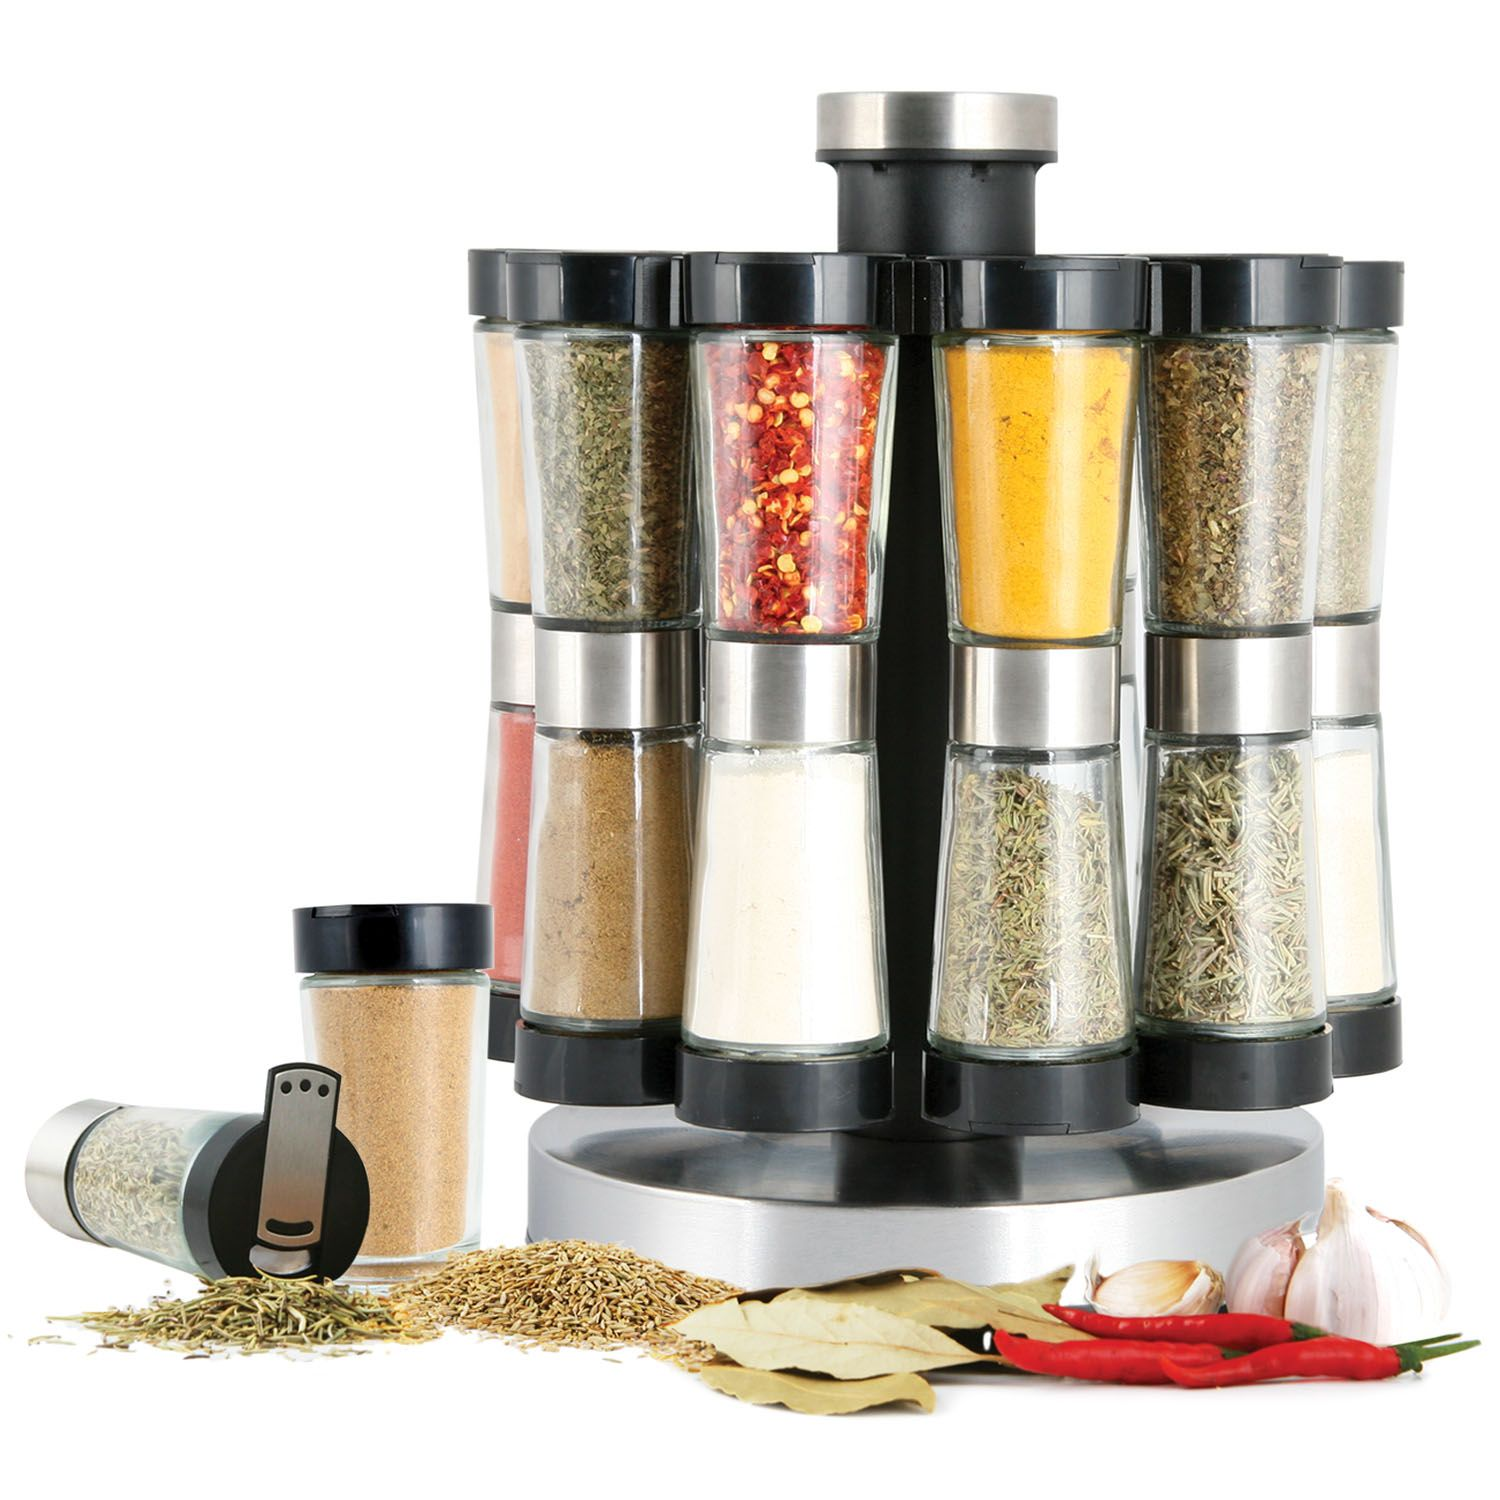 2-in-1 Flipside Spice Rack Set (20 jars) by Orii